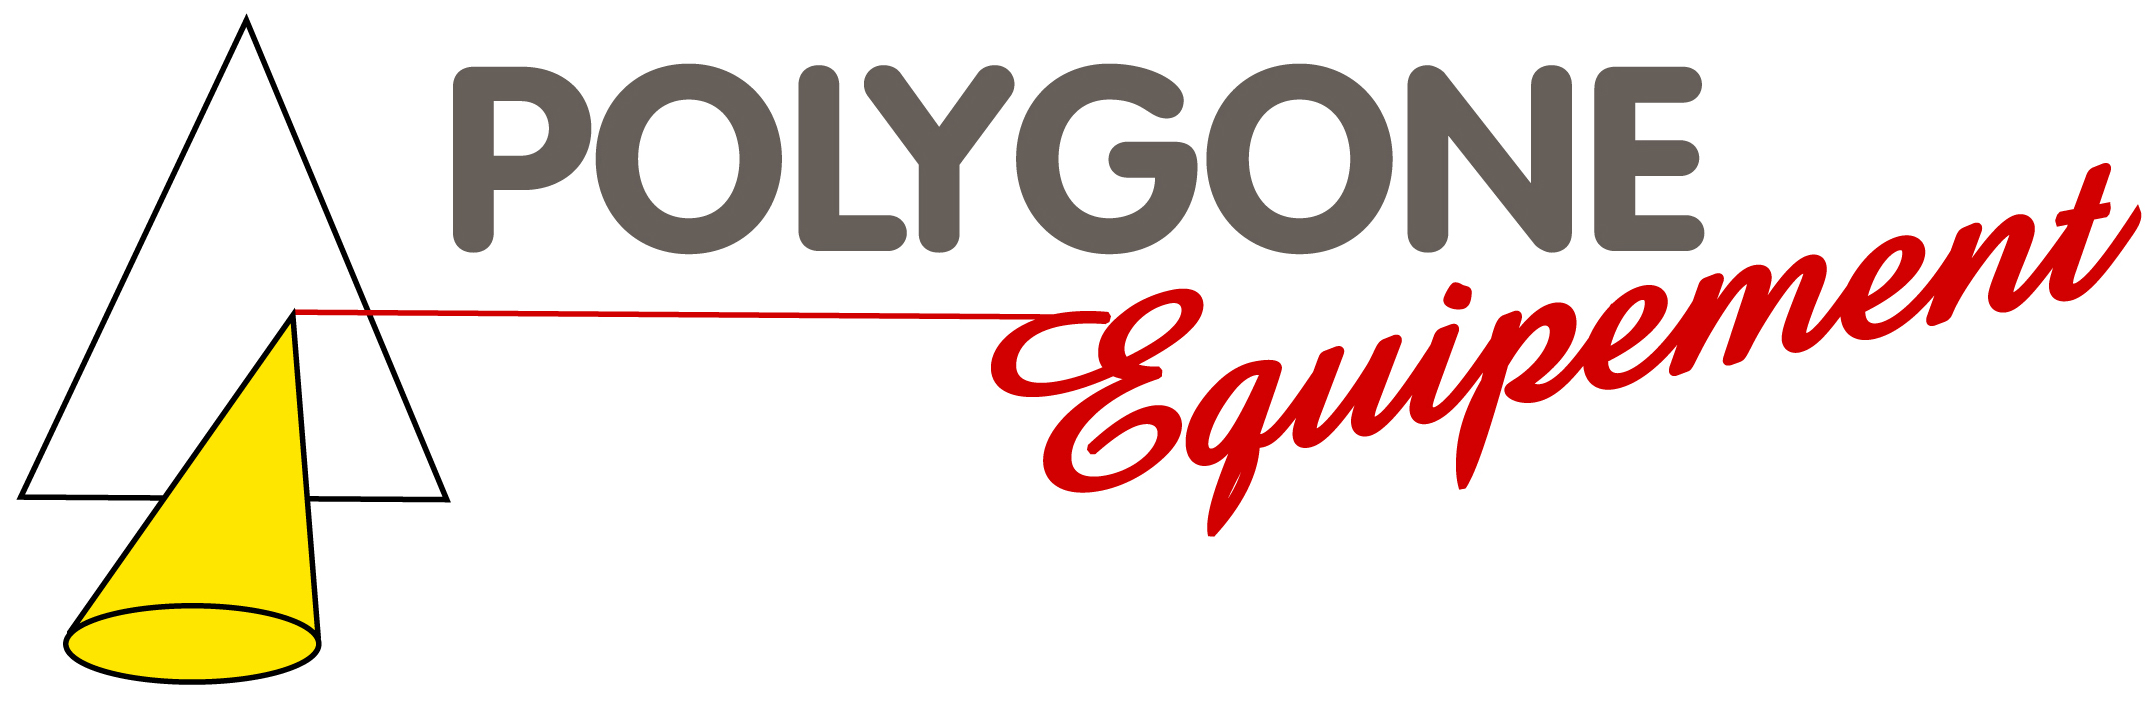 polygone-equipements